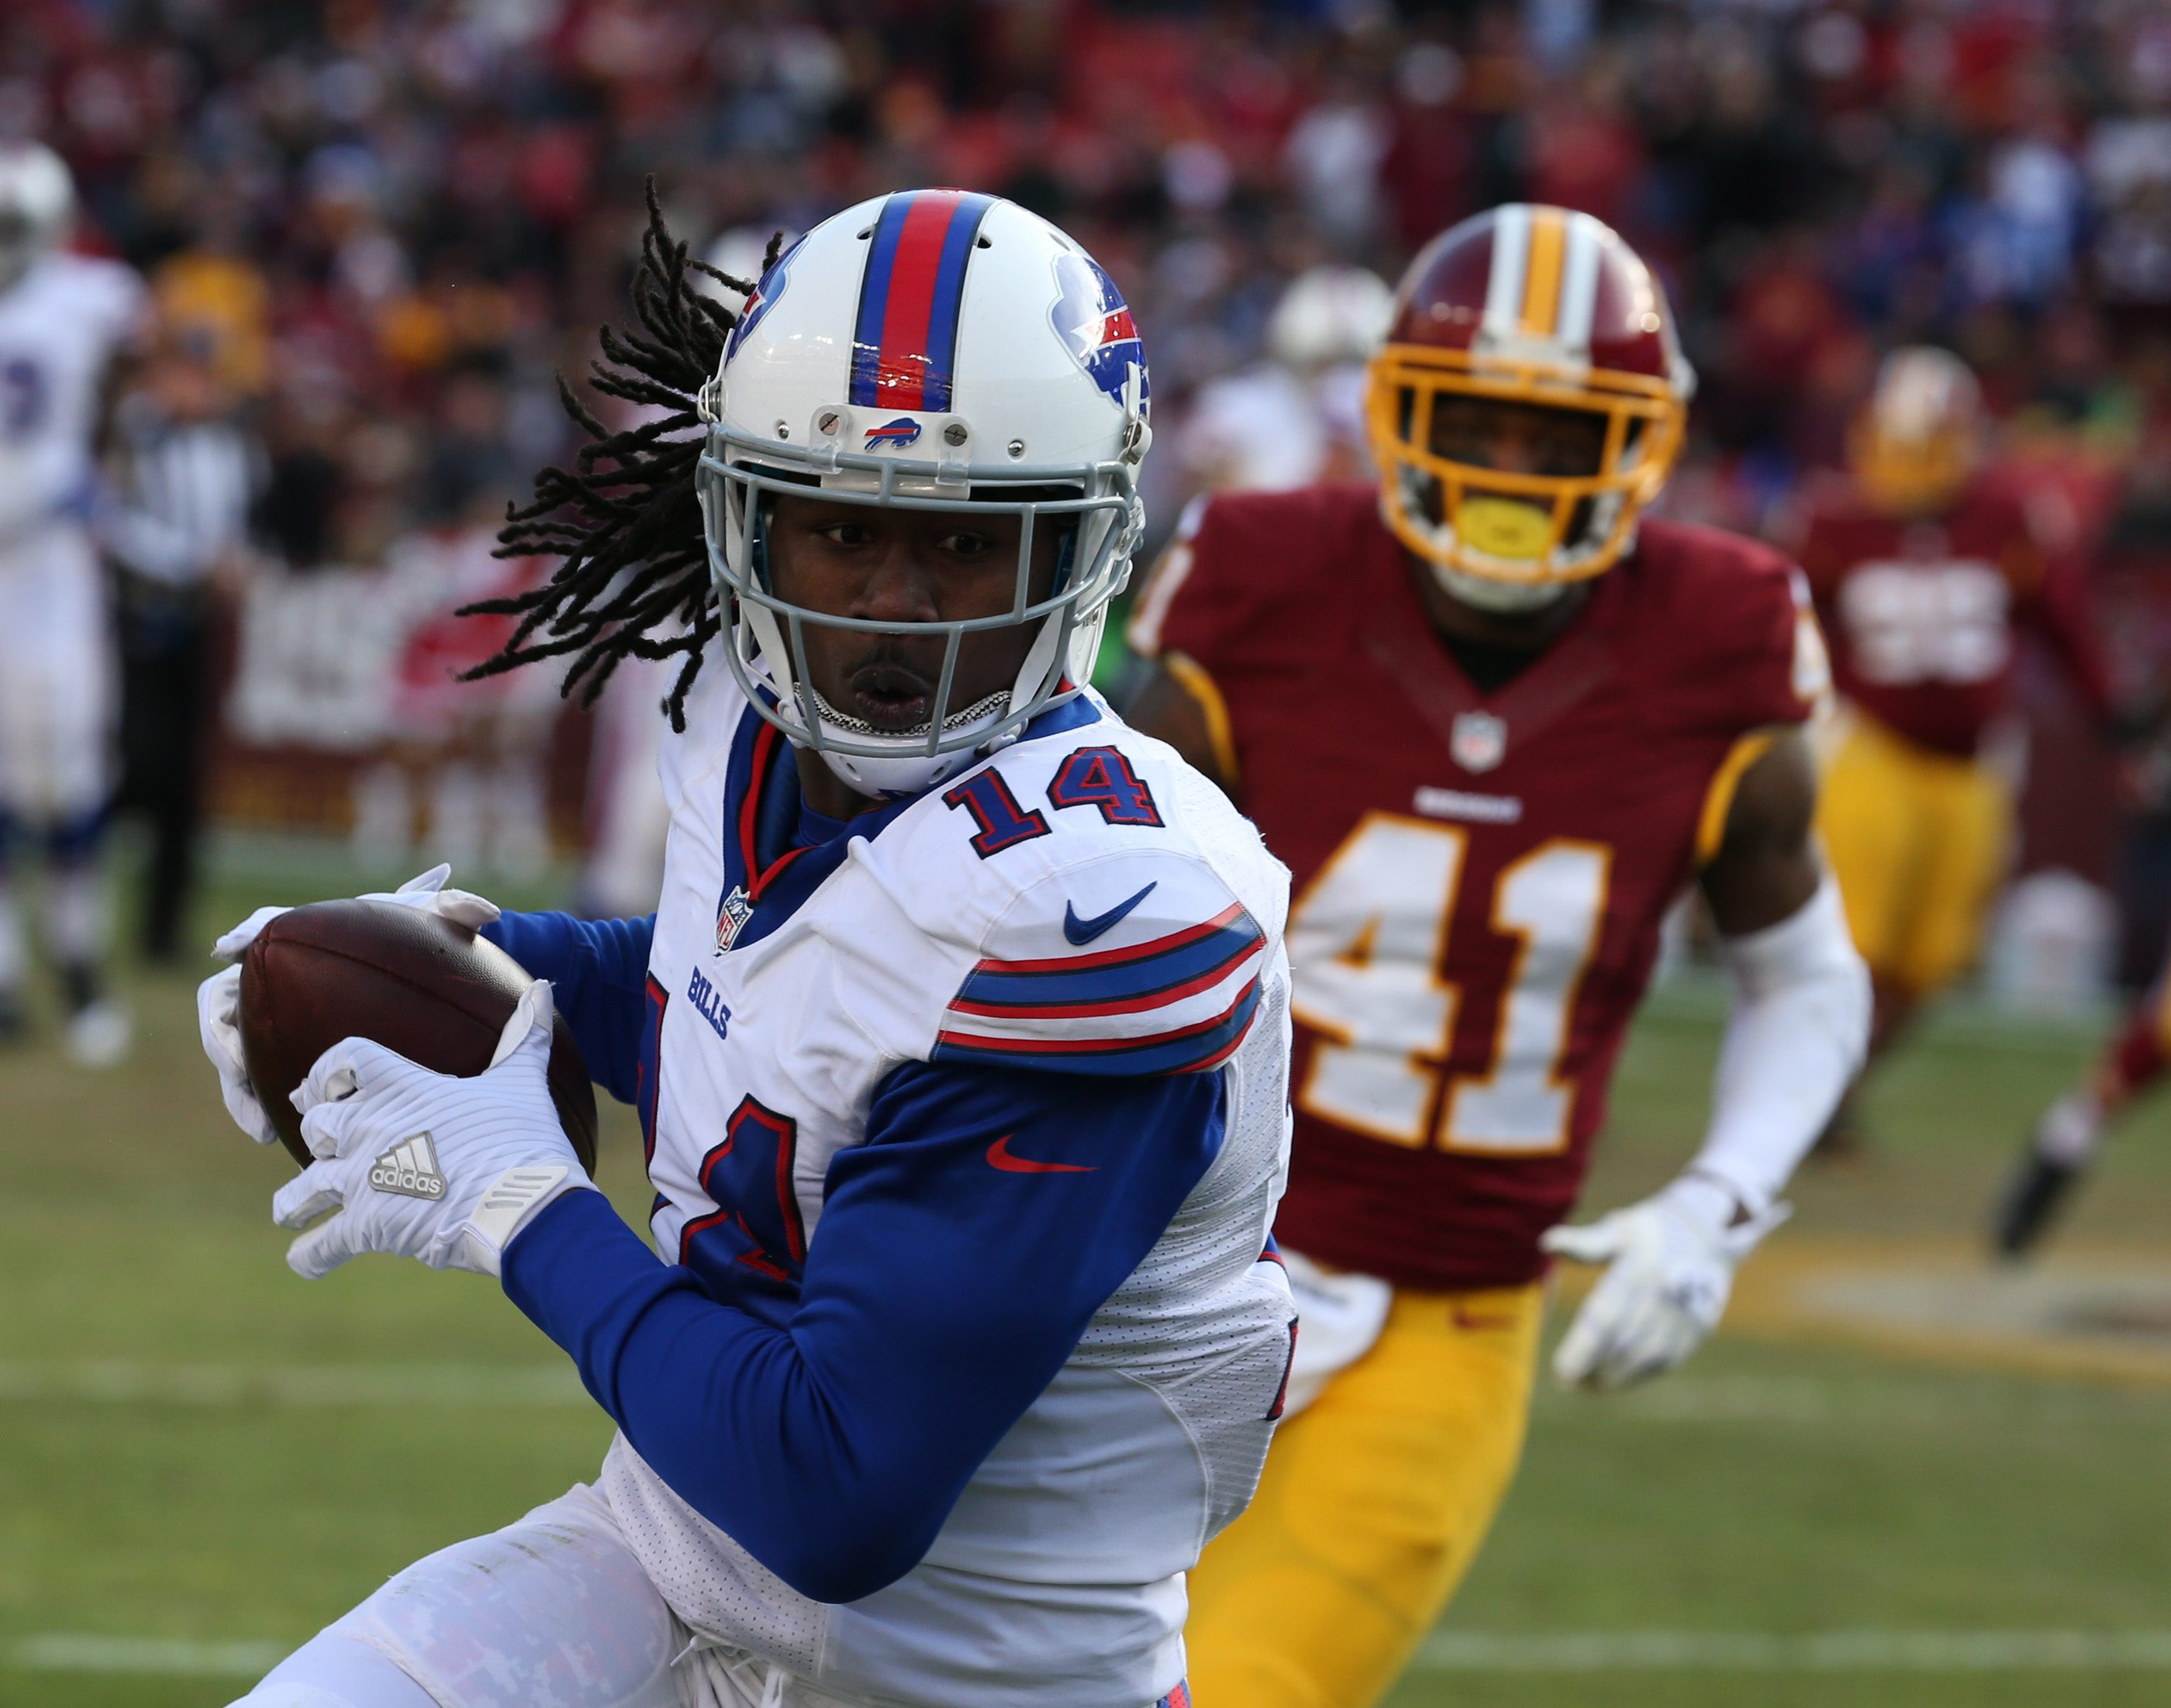 Sammy Watkins (14) makes a great catch over his head n the third quarter. (James P. McCoy/ Buffalo News)